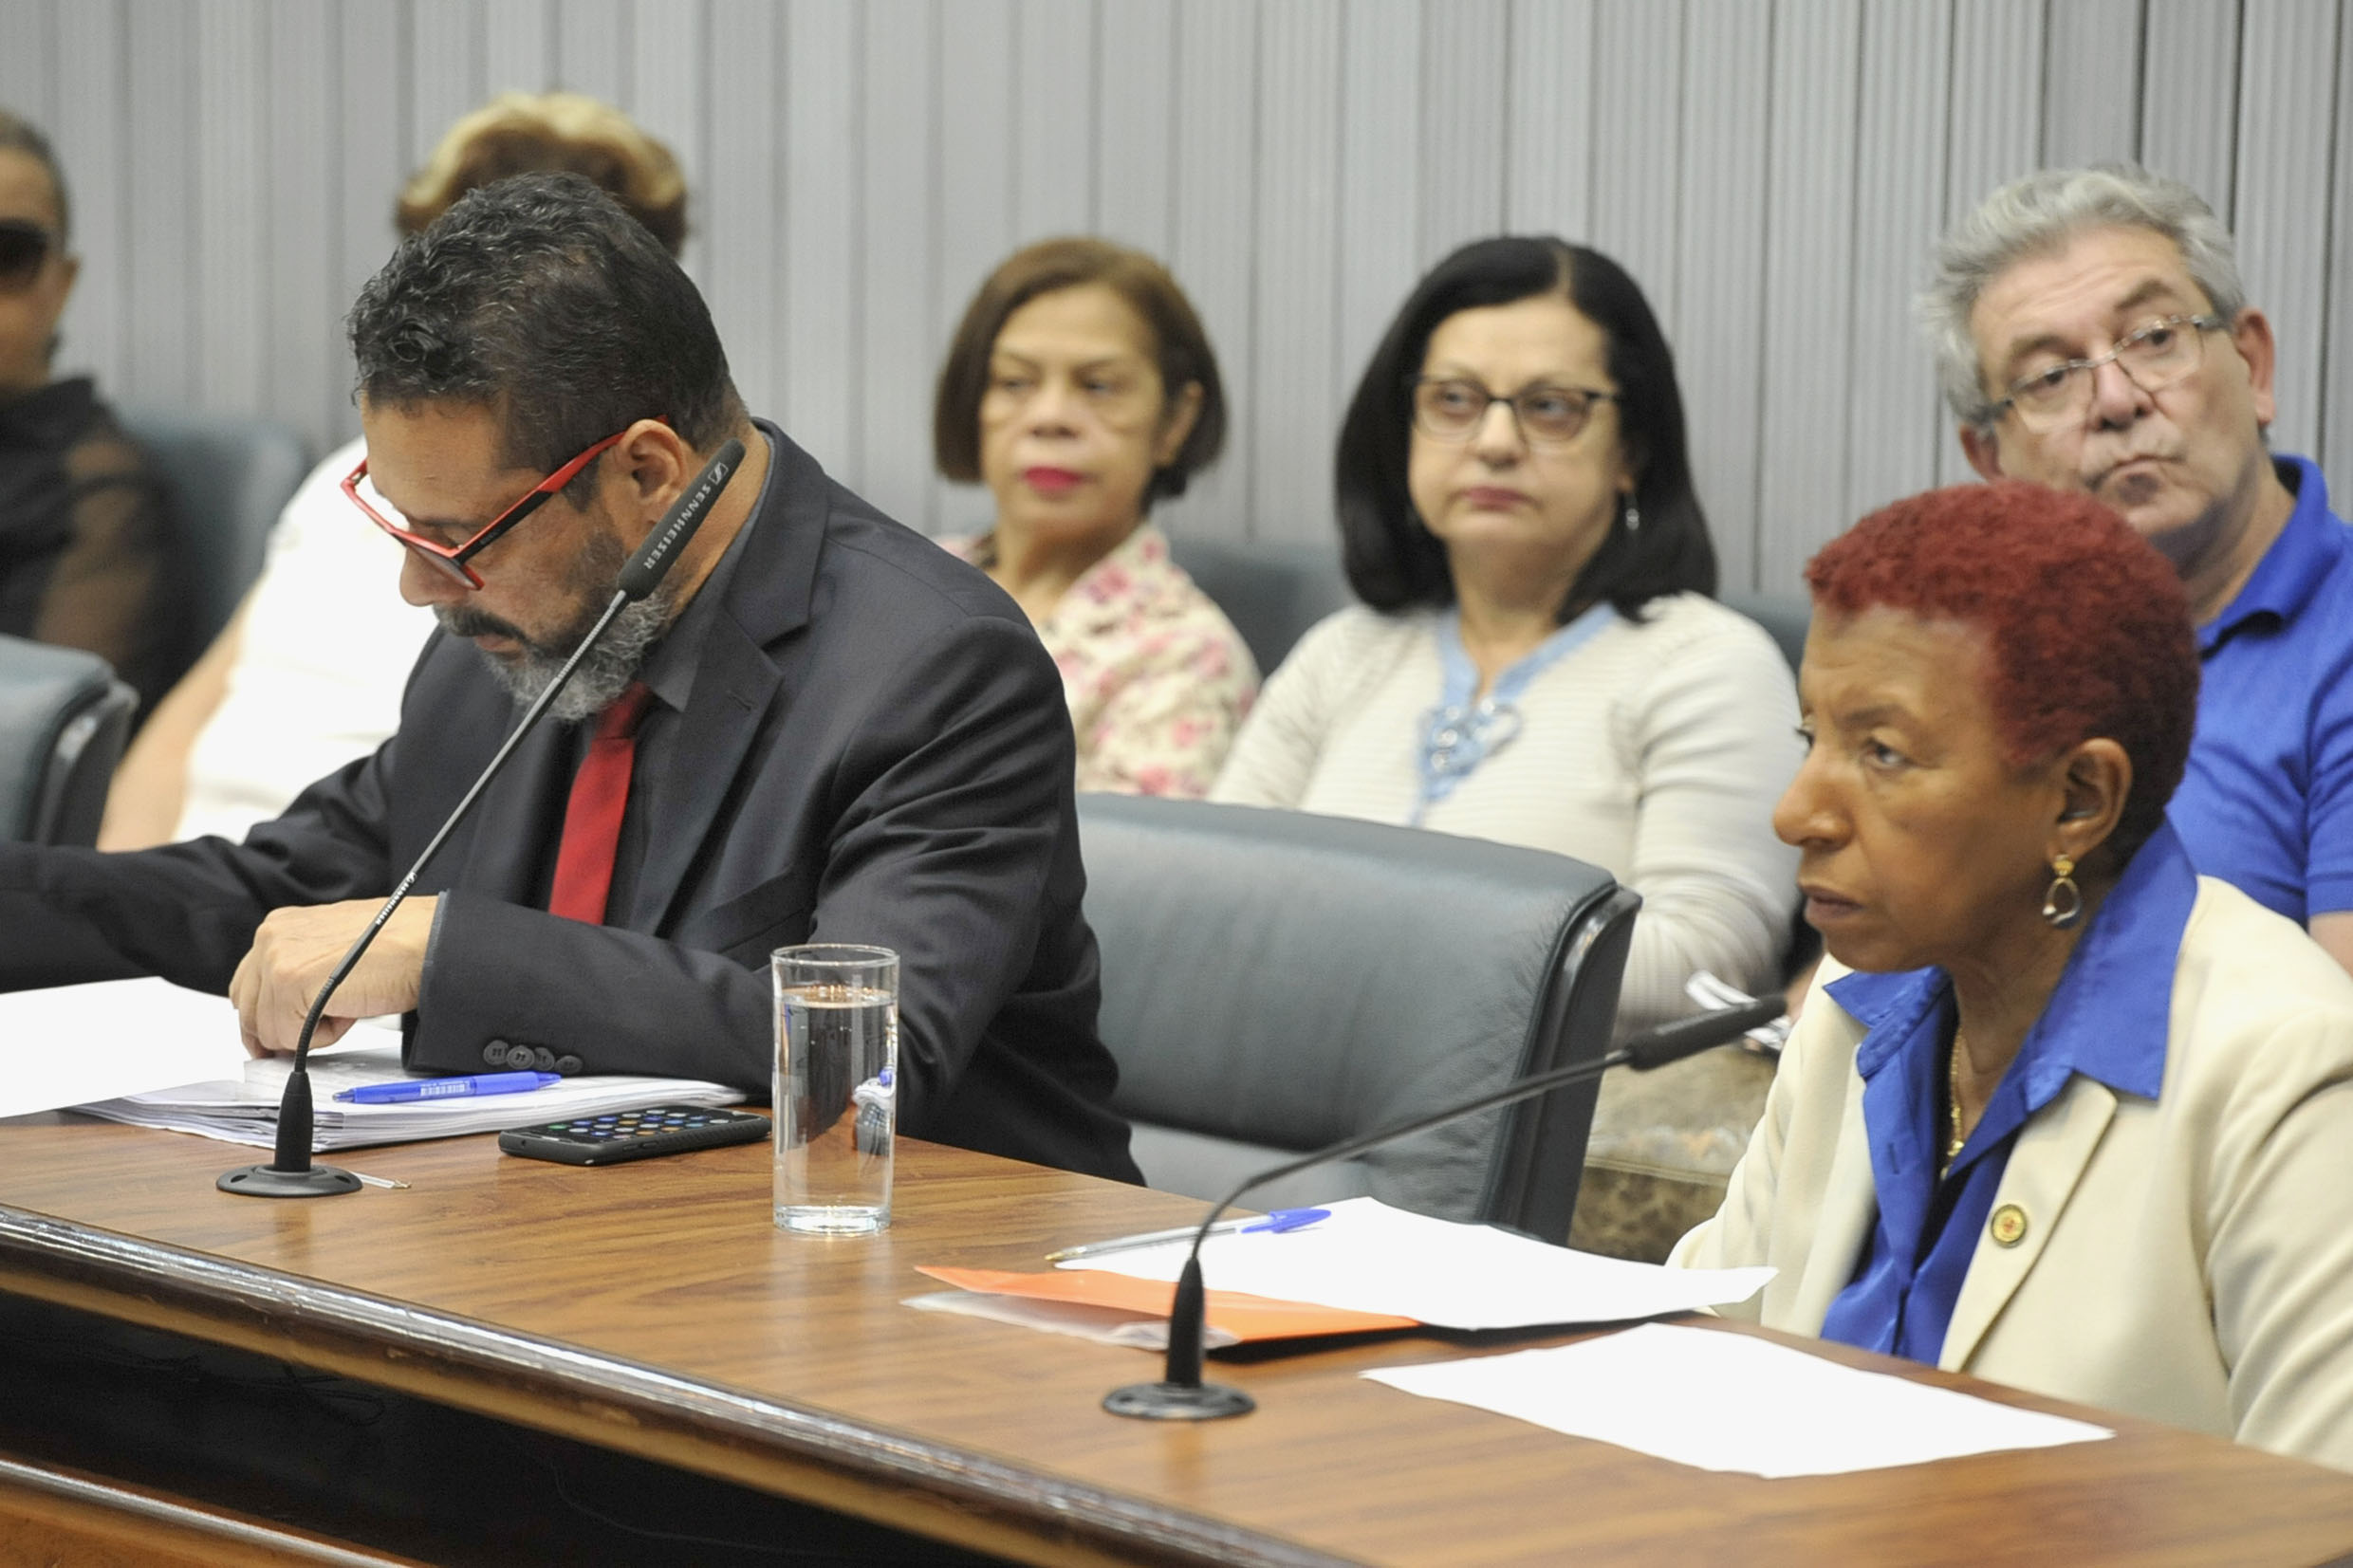 Parlamentares na comissão<a style='float:right' href='https://www3.al.sp.gov.br/repositorio/noticia/N-05-2019/fg233627.jpg' target=_blank><img src='/_img/material-file-download-white.png' width='14px' alt='Clique para baixar a imagem'></a>